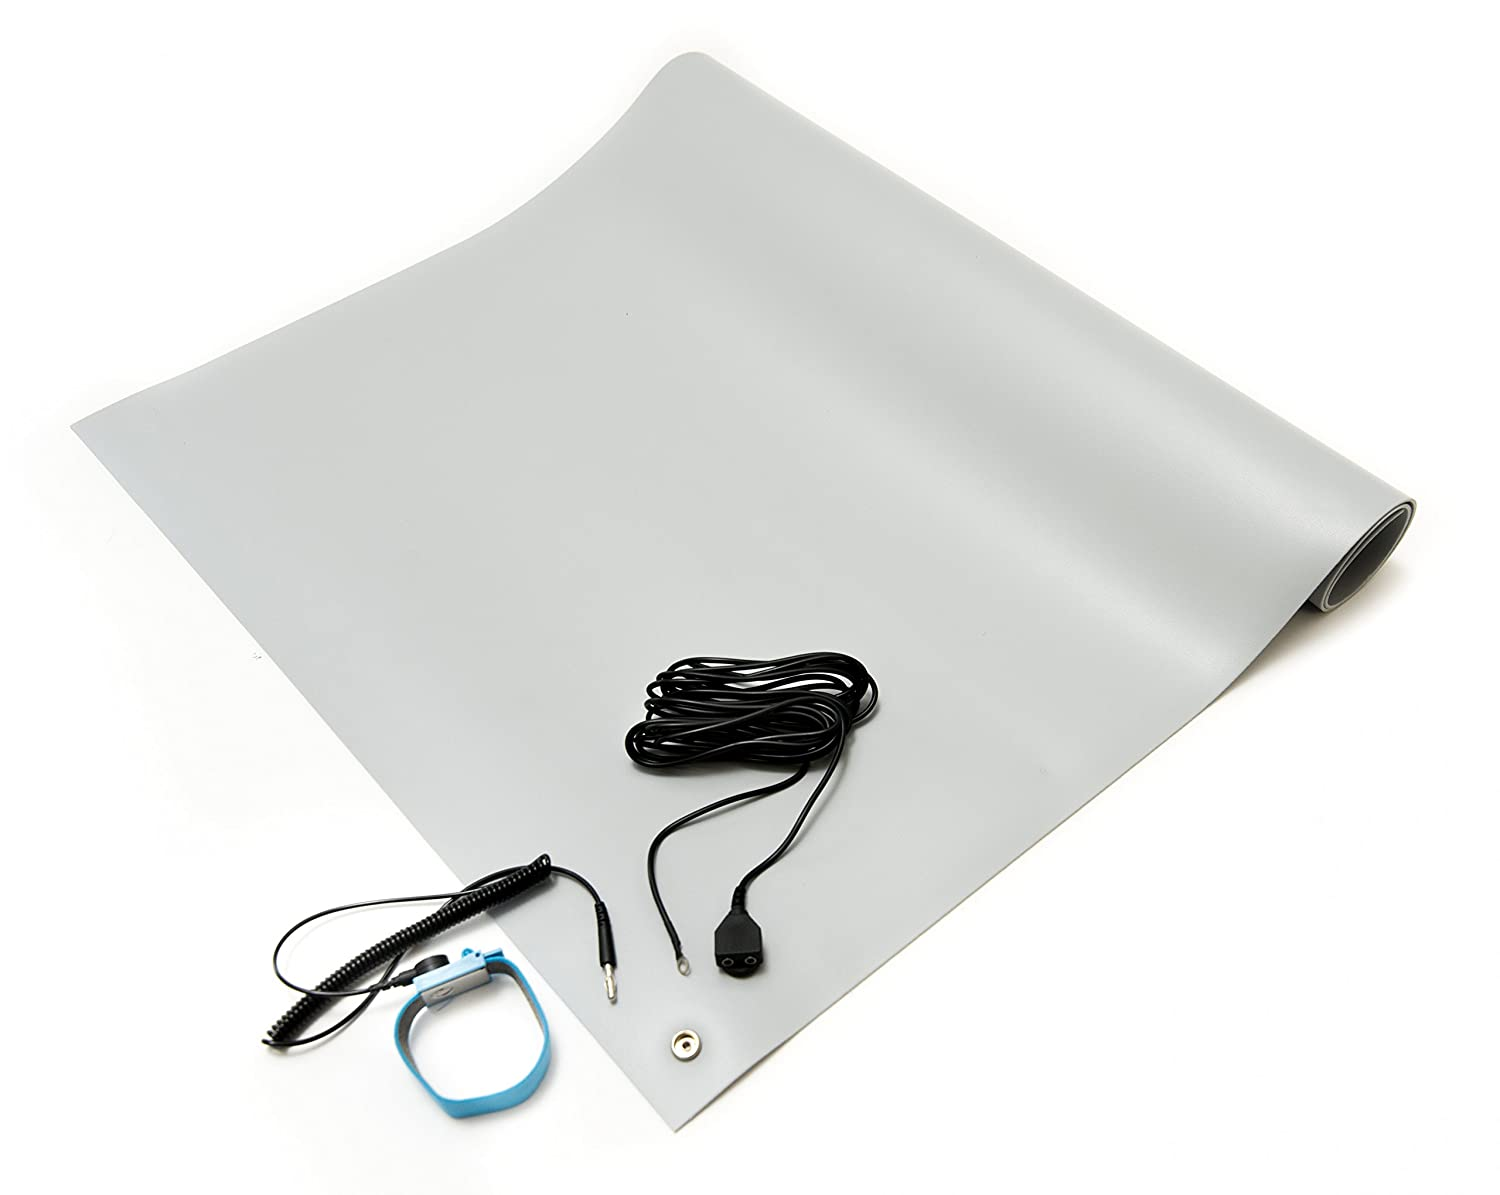 """Bertech ESD Mat Kit with a Wrist Strap and Grounding Cord, 2' Wide x 4' Long x 0.093"""" Thick, Gray (Made in USA)"""